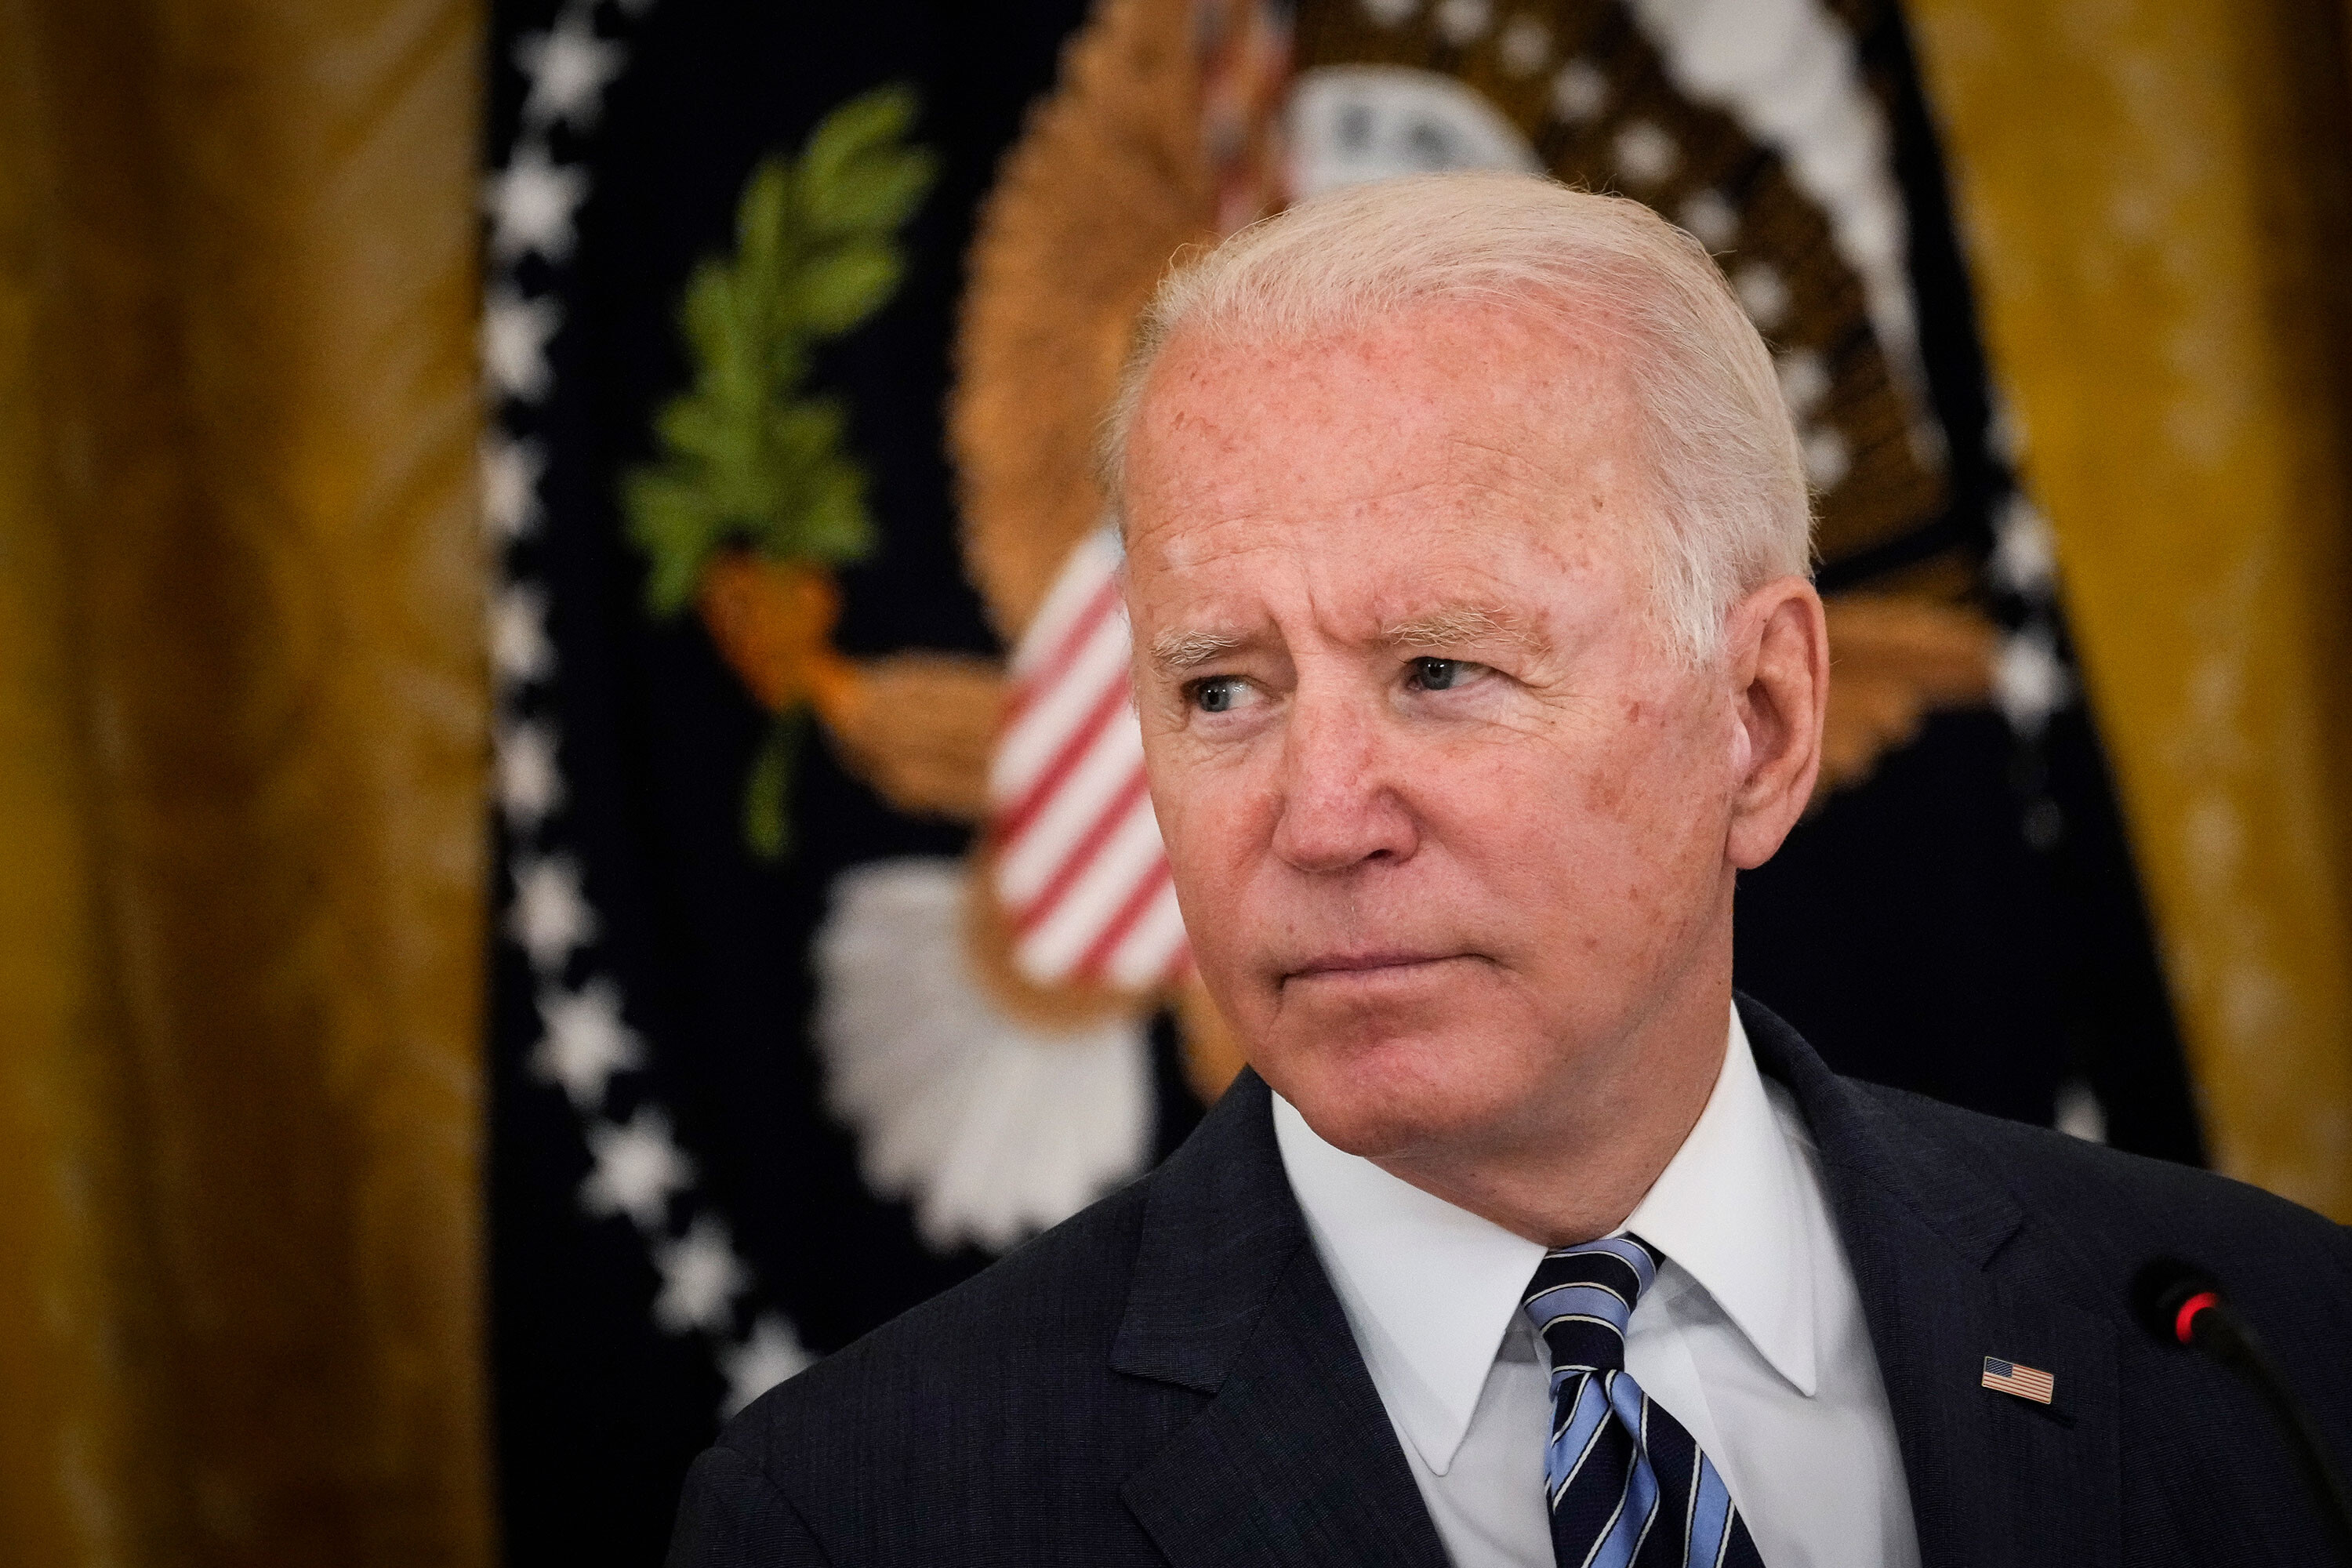 Family members of Americans detained abroad call on Biden administration to do more